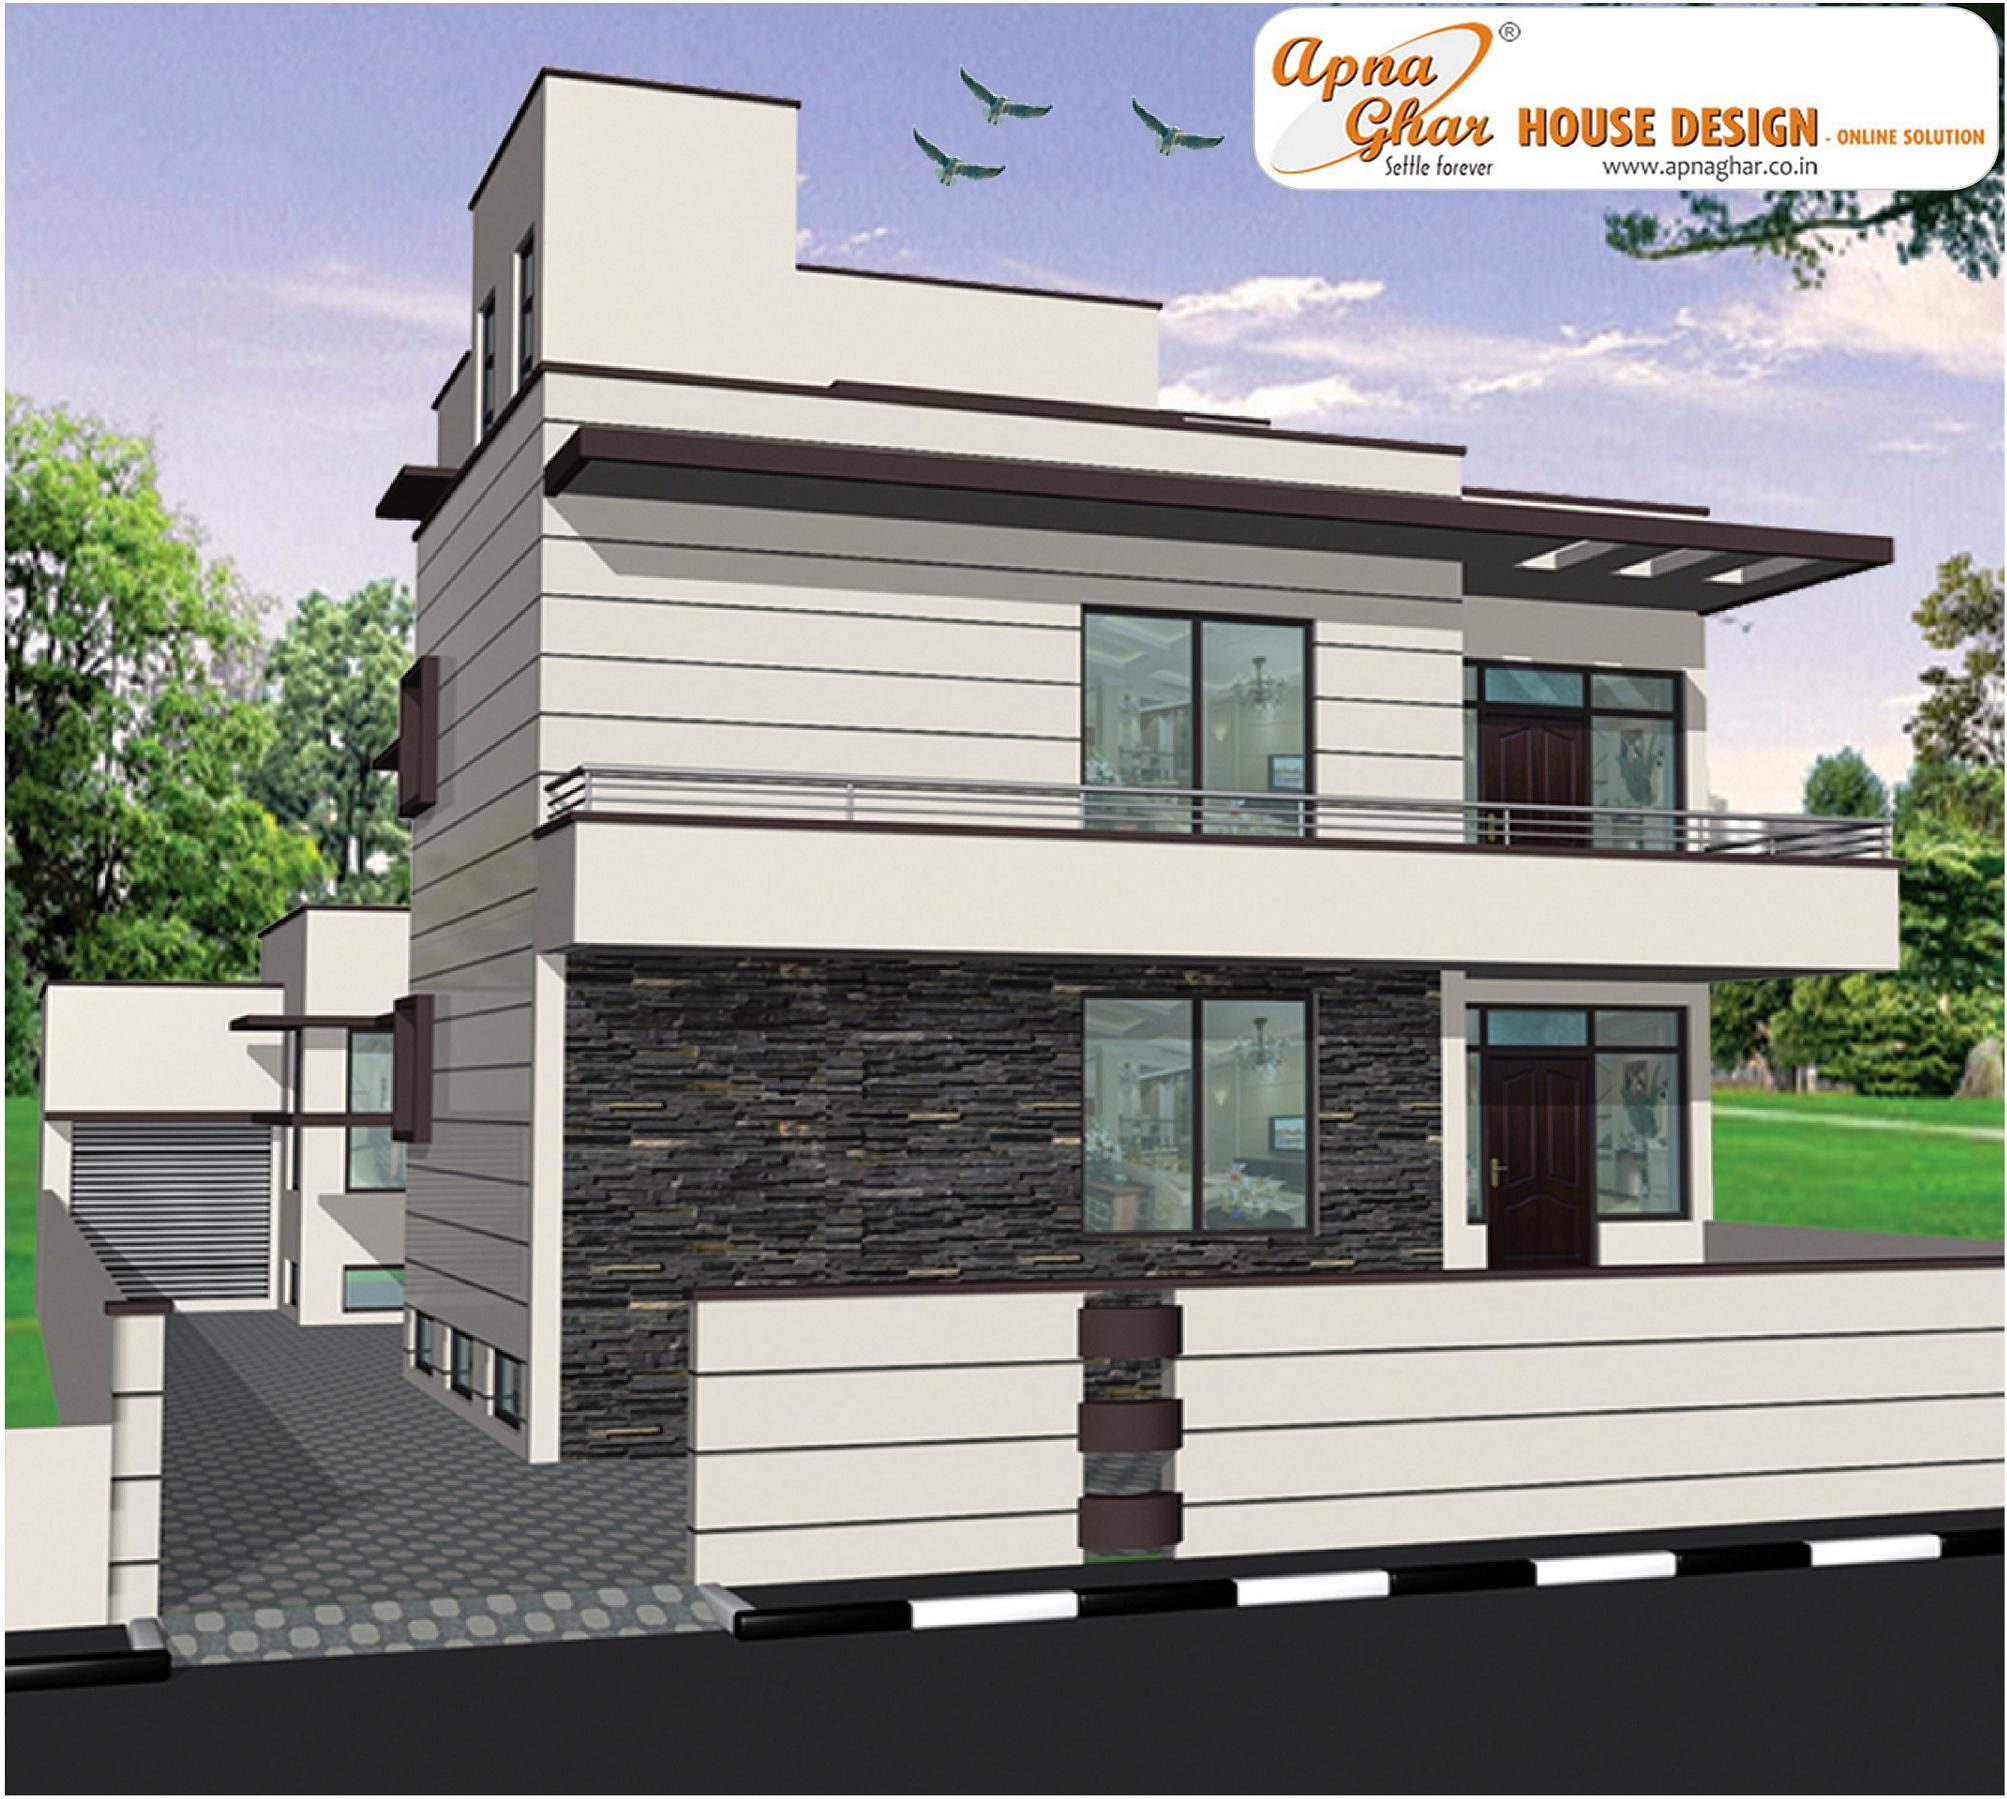 Triplex house design view plan http apnaghar co in